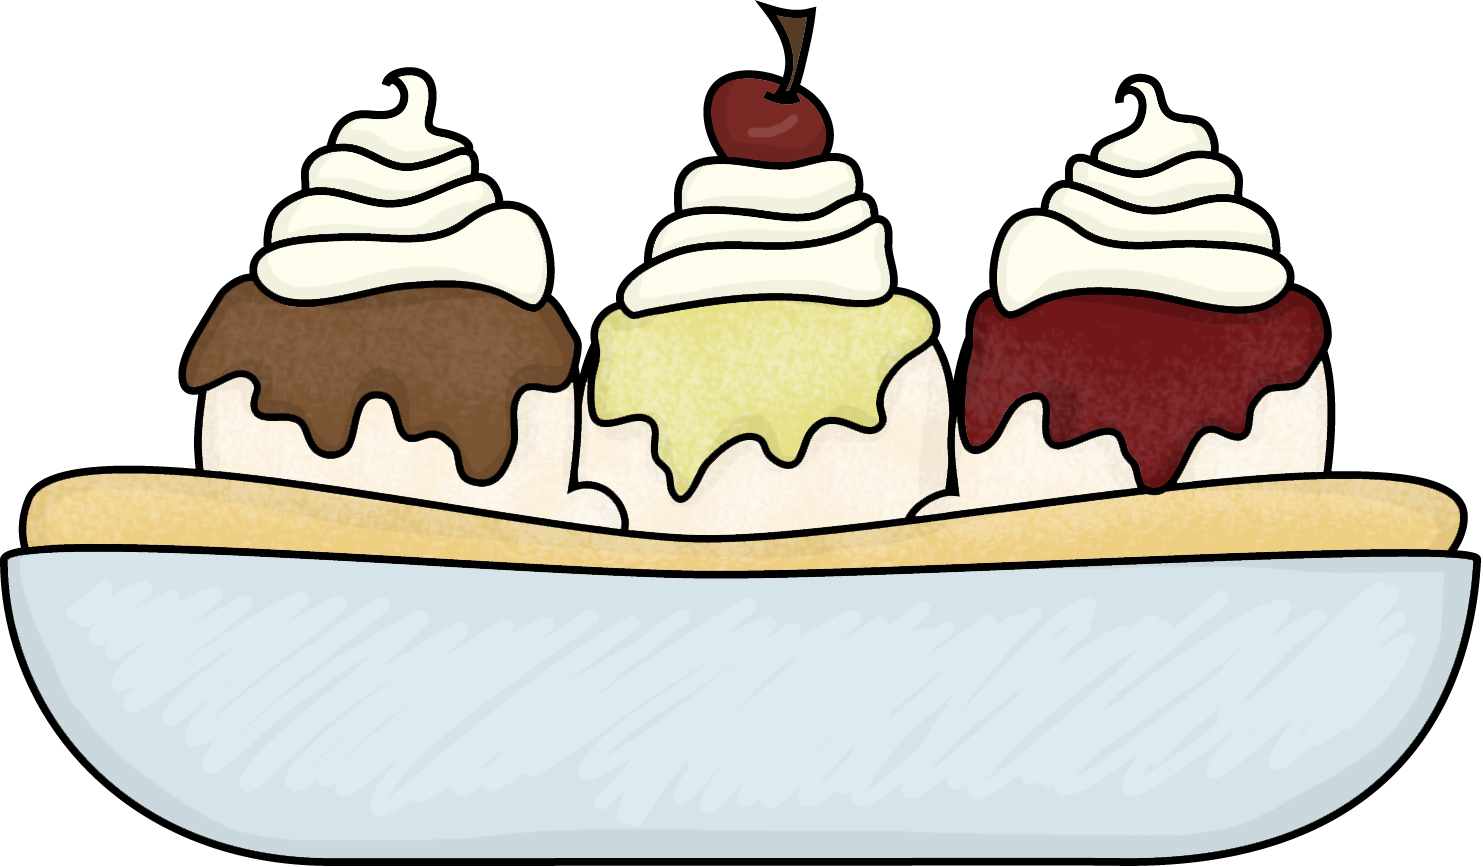 Ice Cream Sundae Bowl Clipart | Clipart Panda - Free Clipart Images